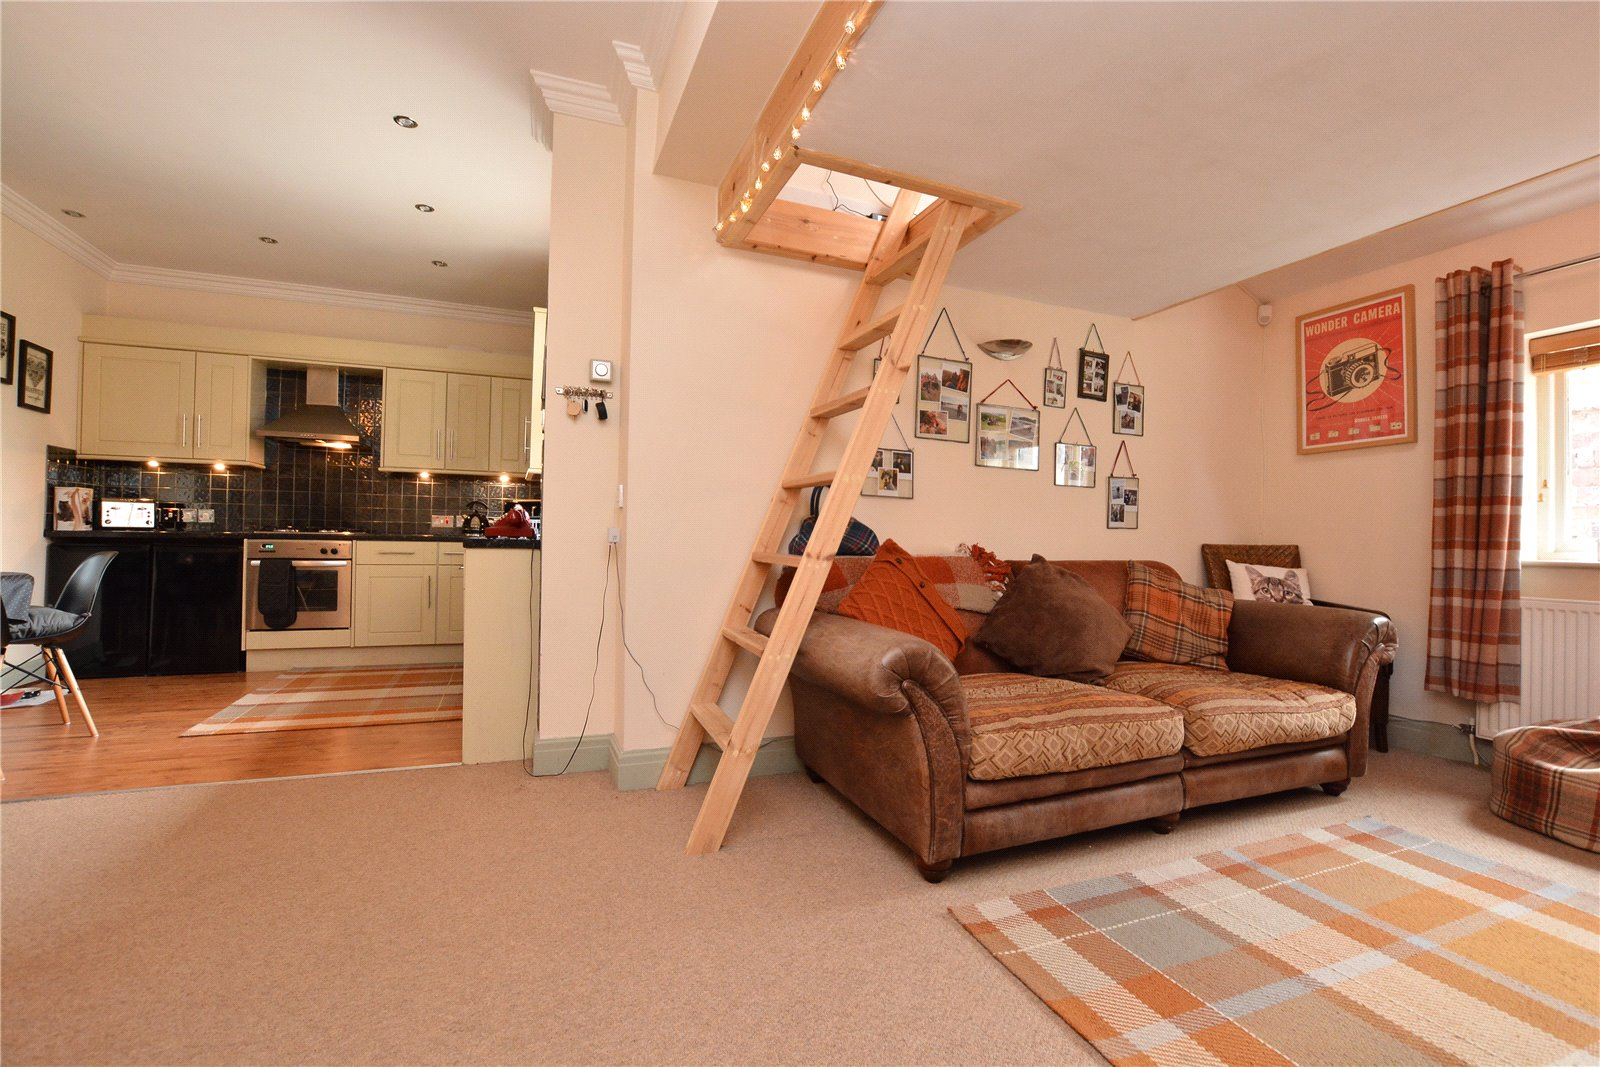 Property for sale in Wetherby, Living room and dining area open plan.